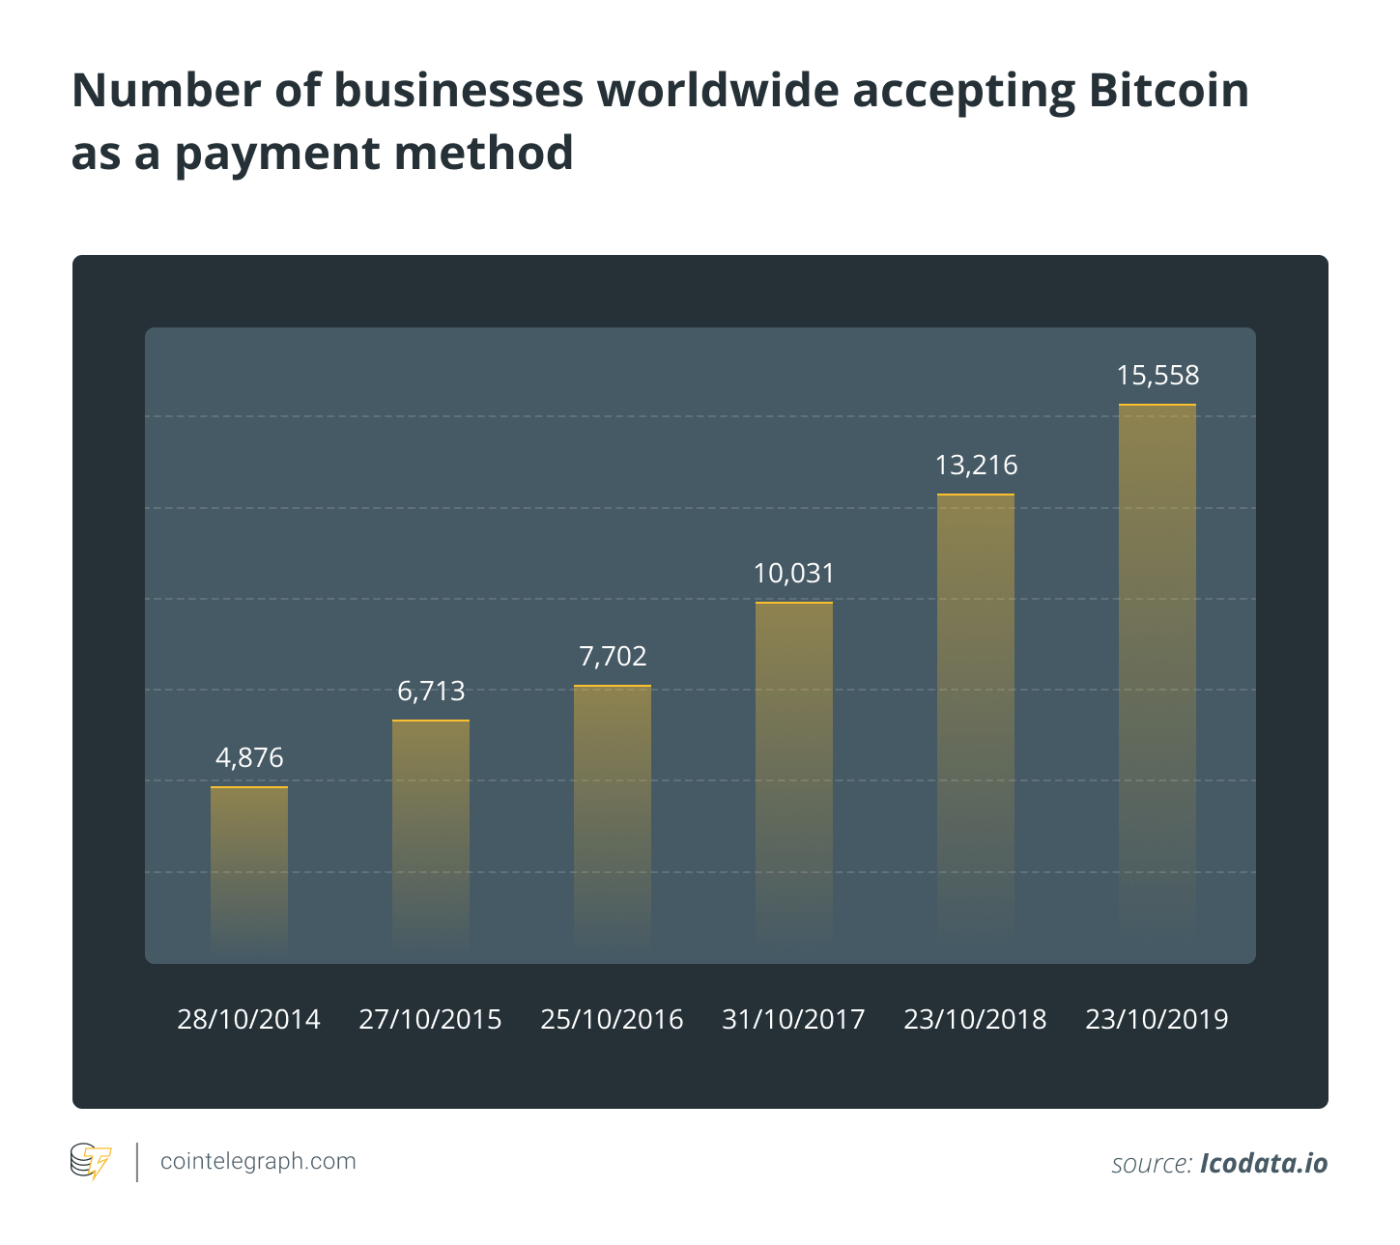 Number of businesses worldwide accepting Bitcoin as a payment method